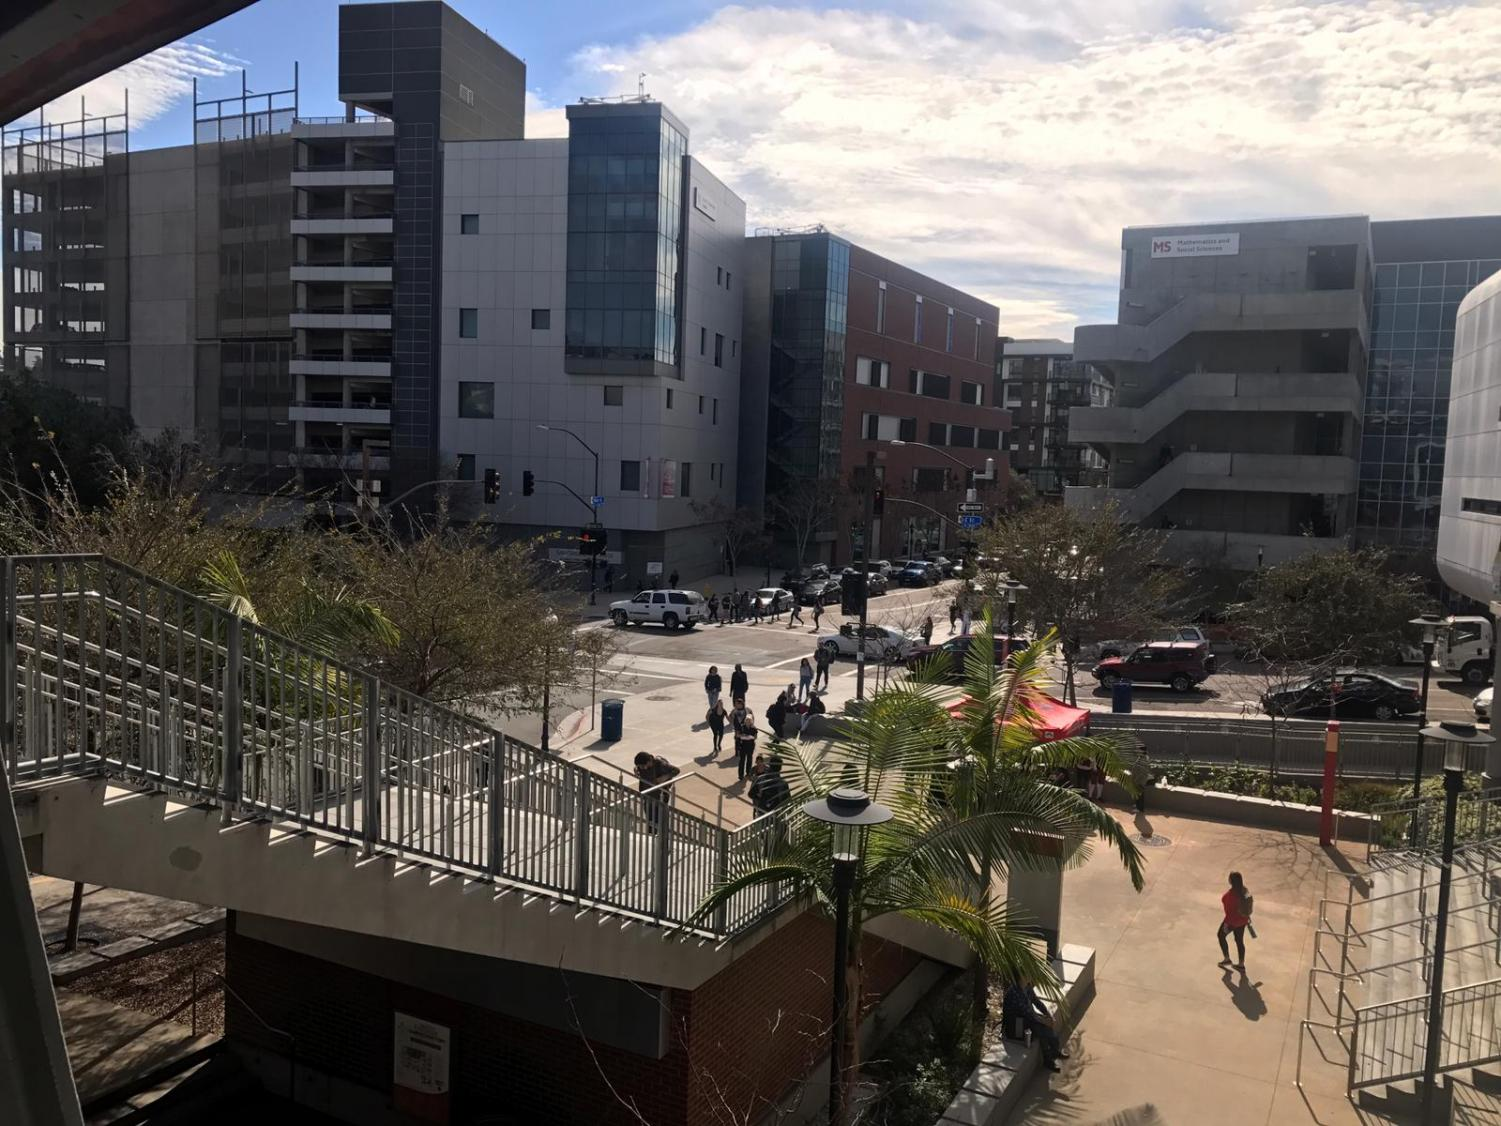 School is back in session at San Diego City College and the rest of the San Diego Community College District schools, which expect approximately 64,000 students for the spring 2018 term. Jonny Rico, City Times